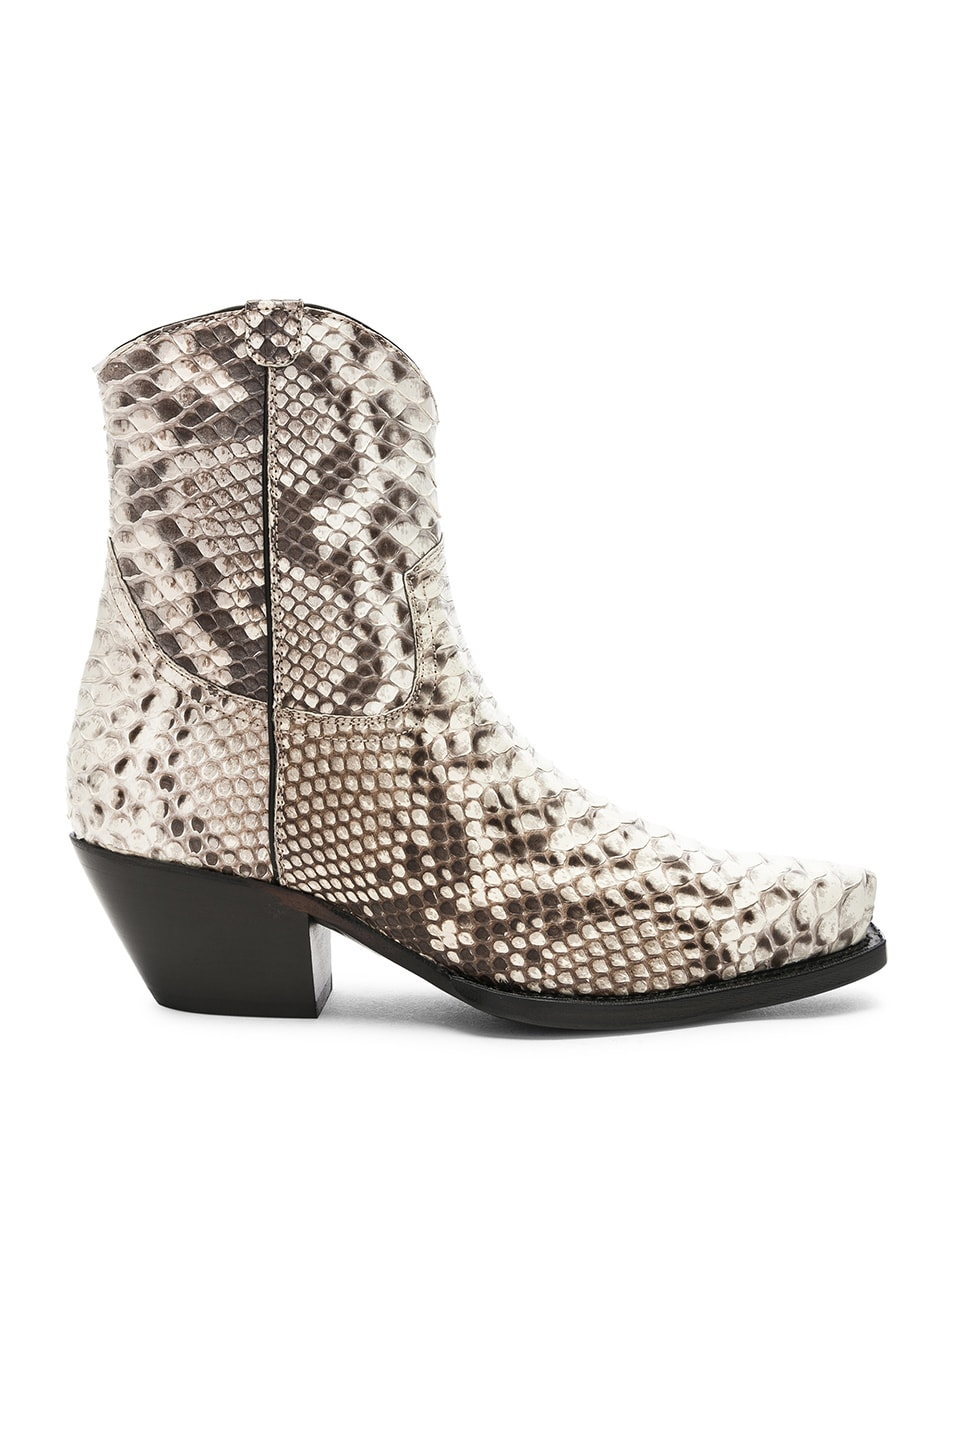 Image 1 of R13 Snakeskin Embossed Cowboy Ankle Boots in Brown Snake